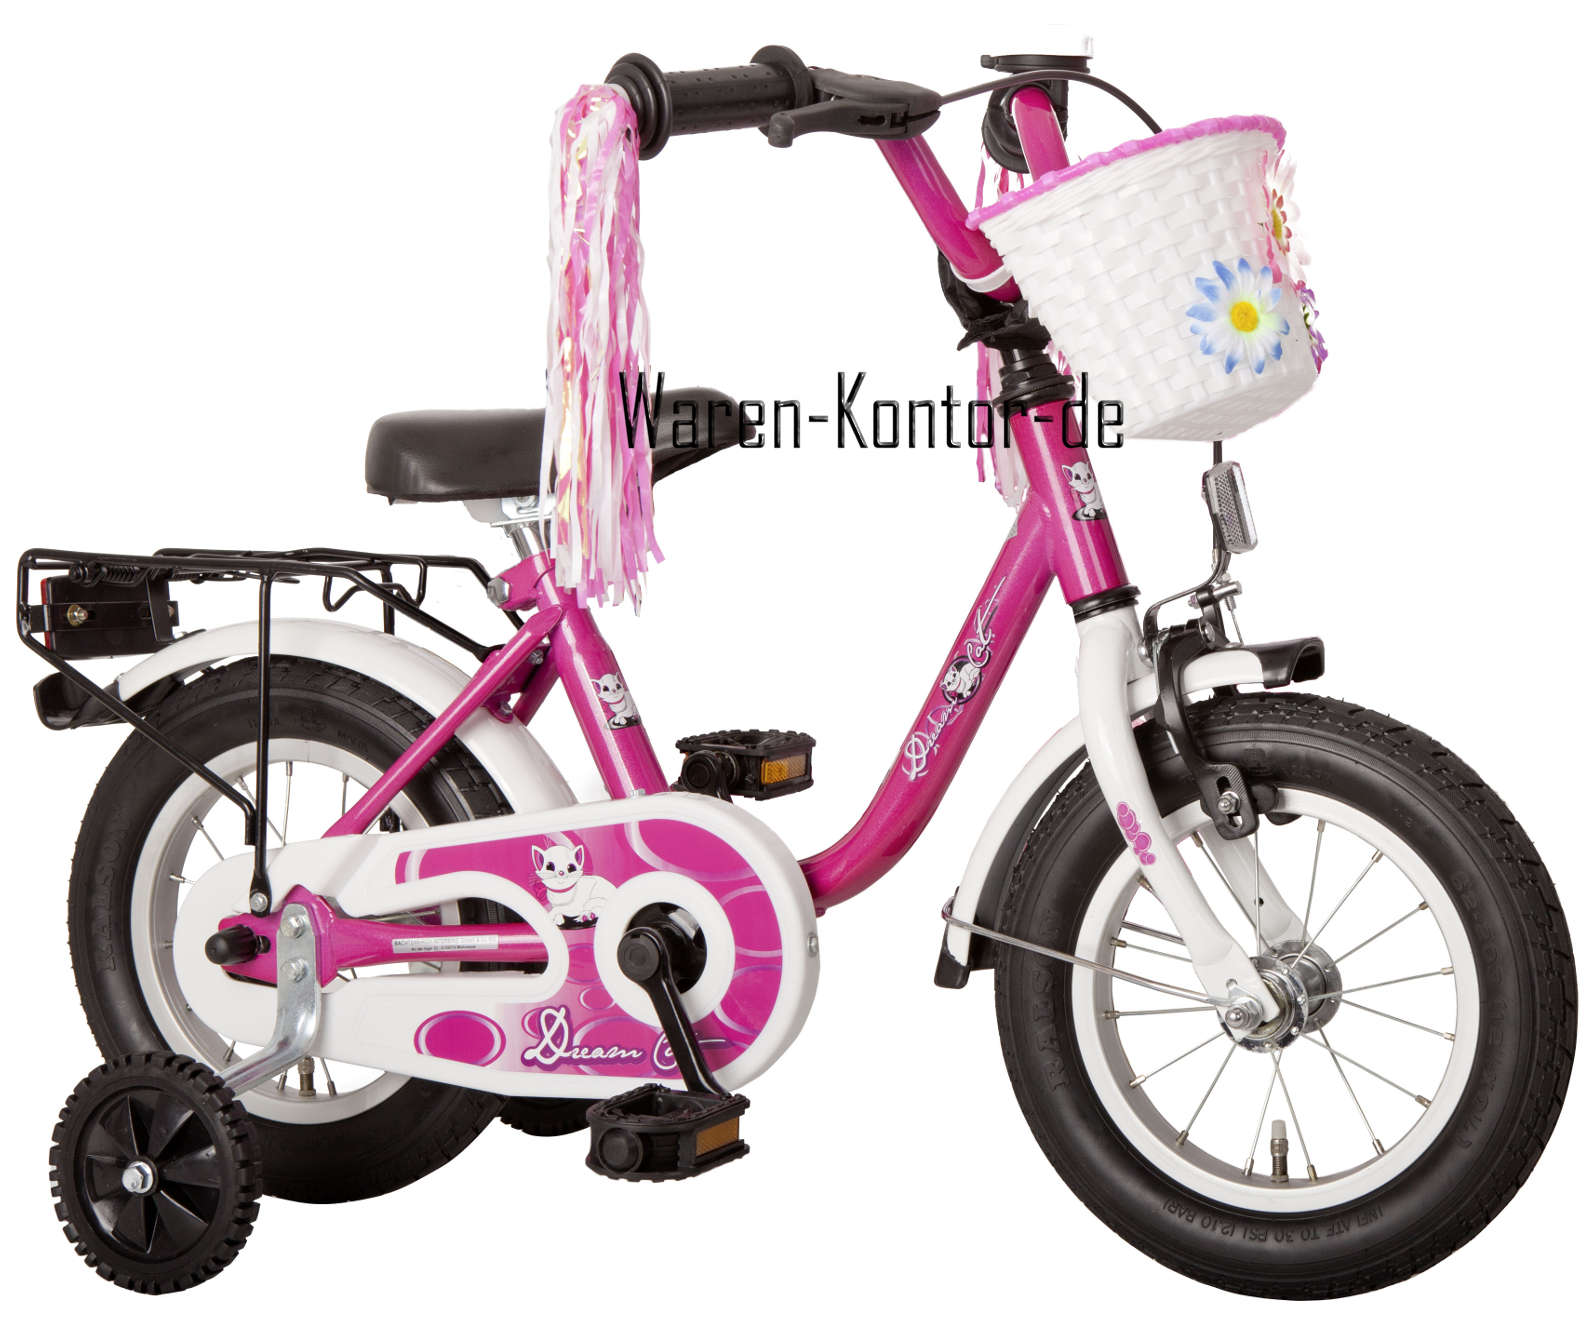 kinderfahrrad 14 zoll kinderfahrrad 14 zoll dream cat ab. Black Bedroom Furniture Sets. Home Design Ideas